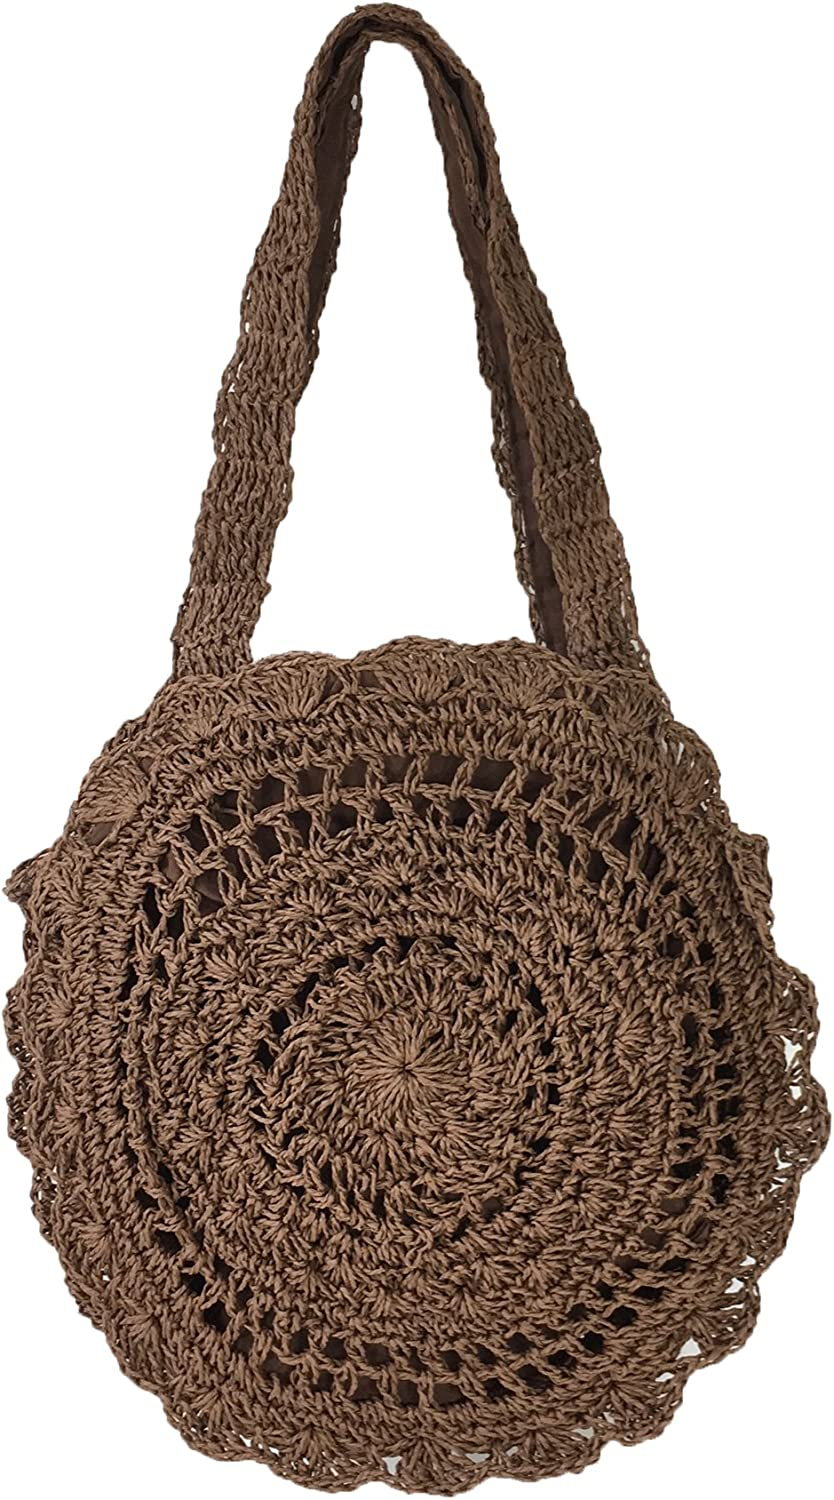 Brown Fashion Culture Macrame Straw Round Tote